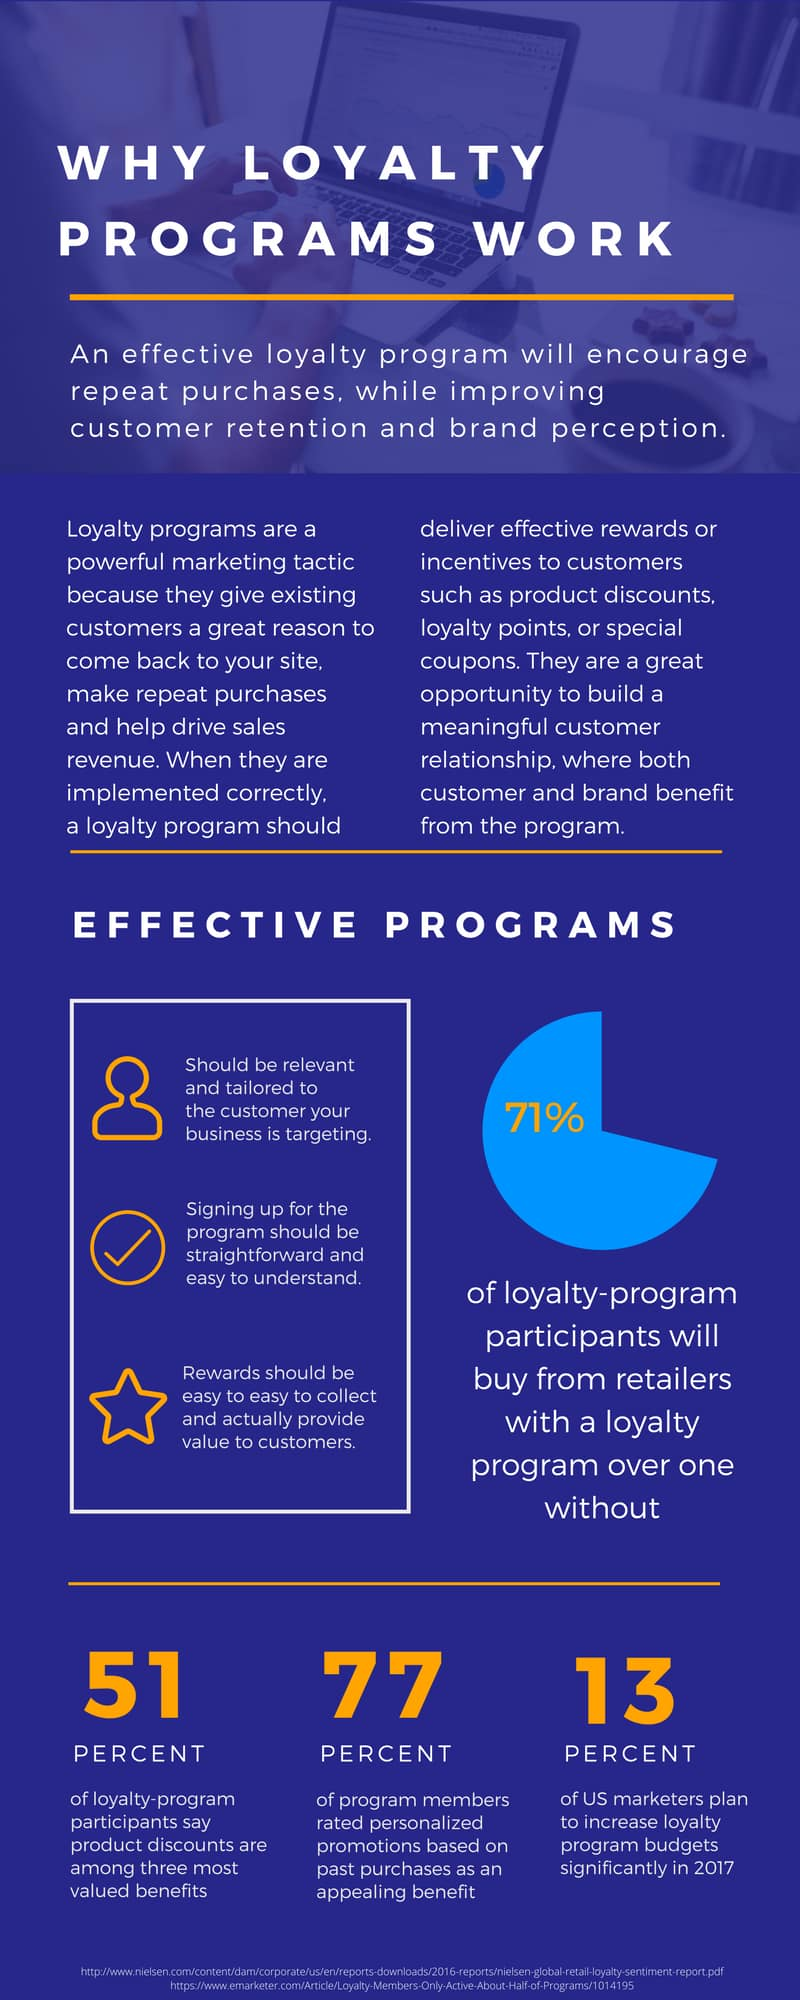 Why loyalty programs work